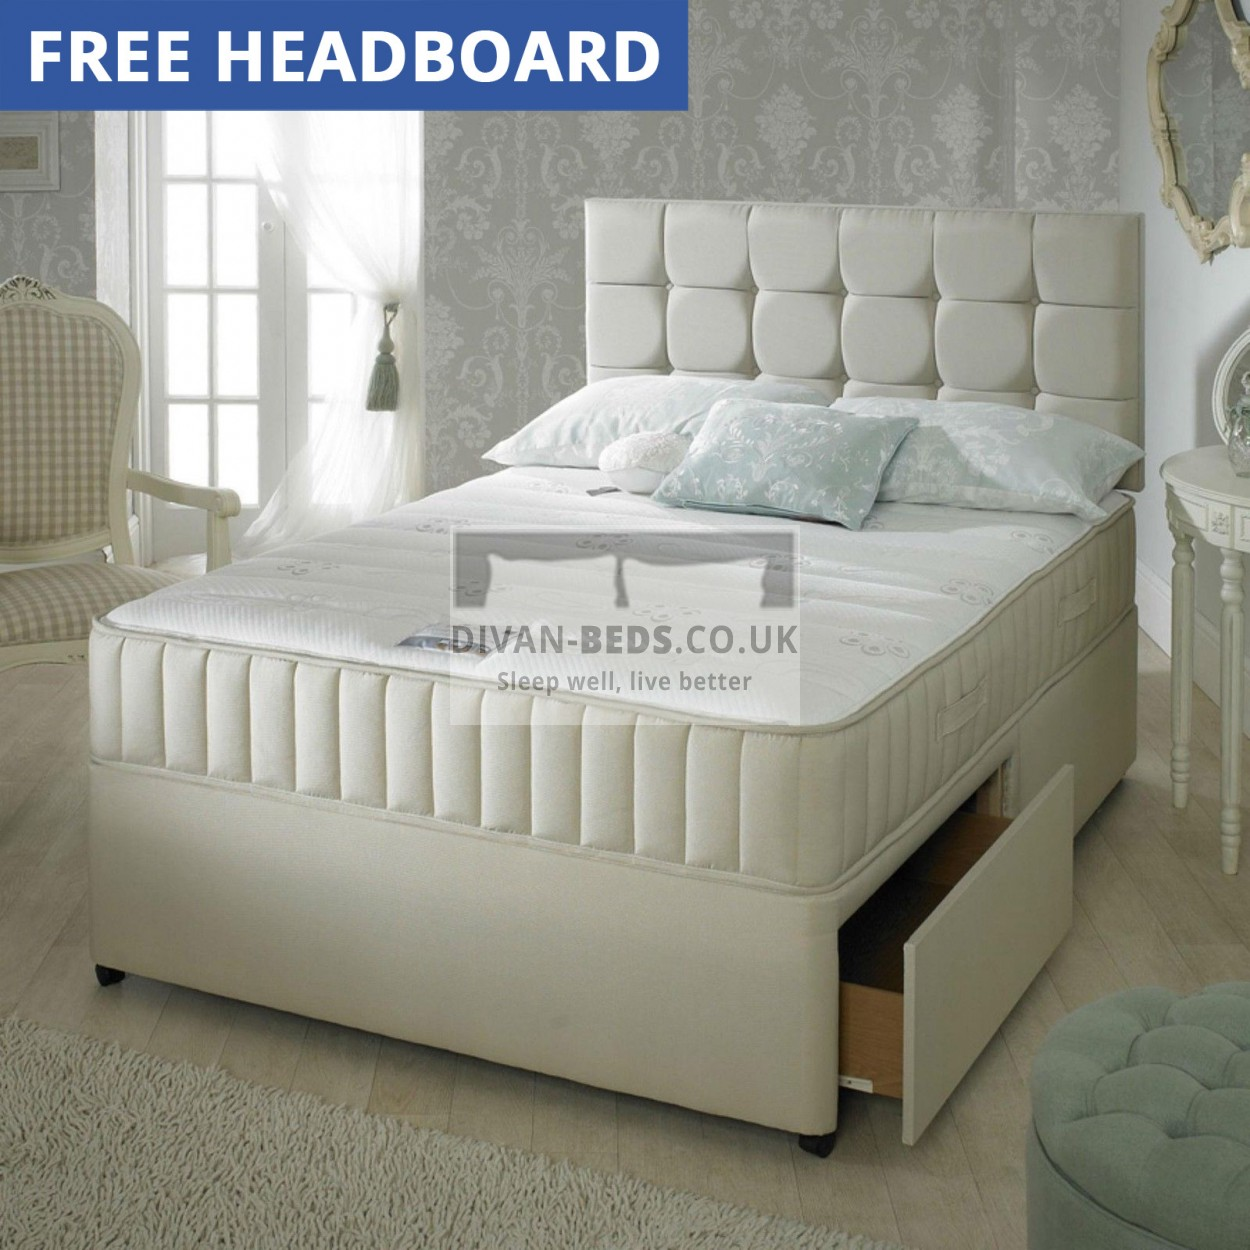 Carlton Leather Divan Bed With 1500 Pocket Spring Memory Foam Mattress Guaranteed Cheapest